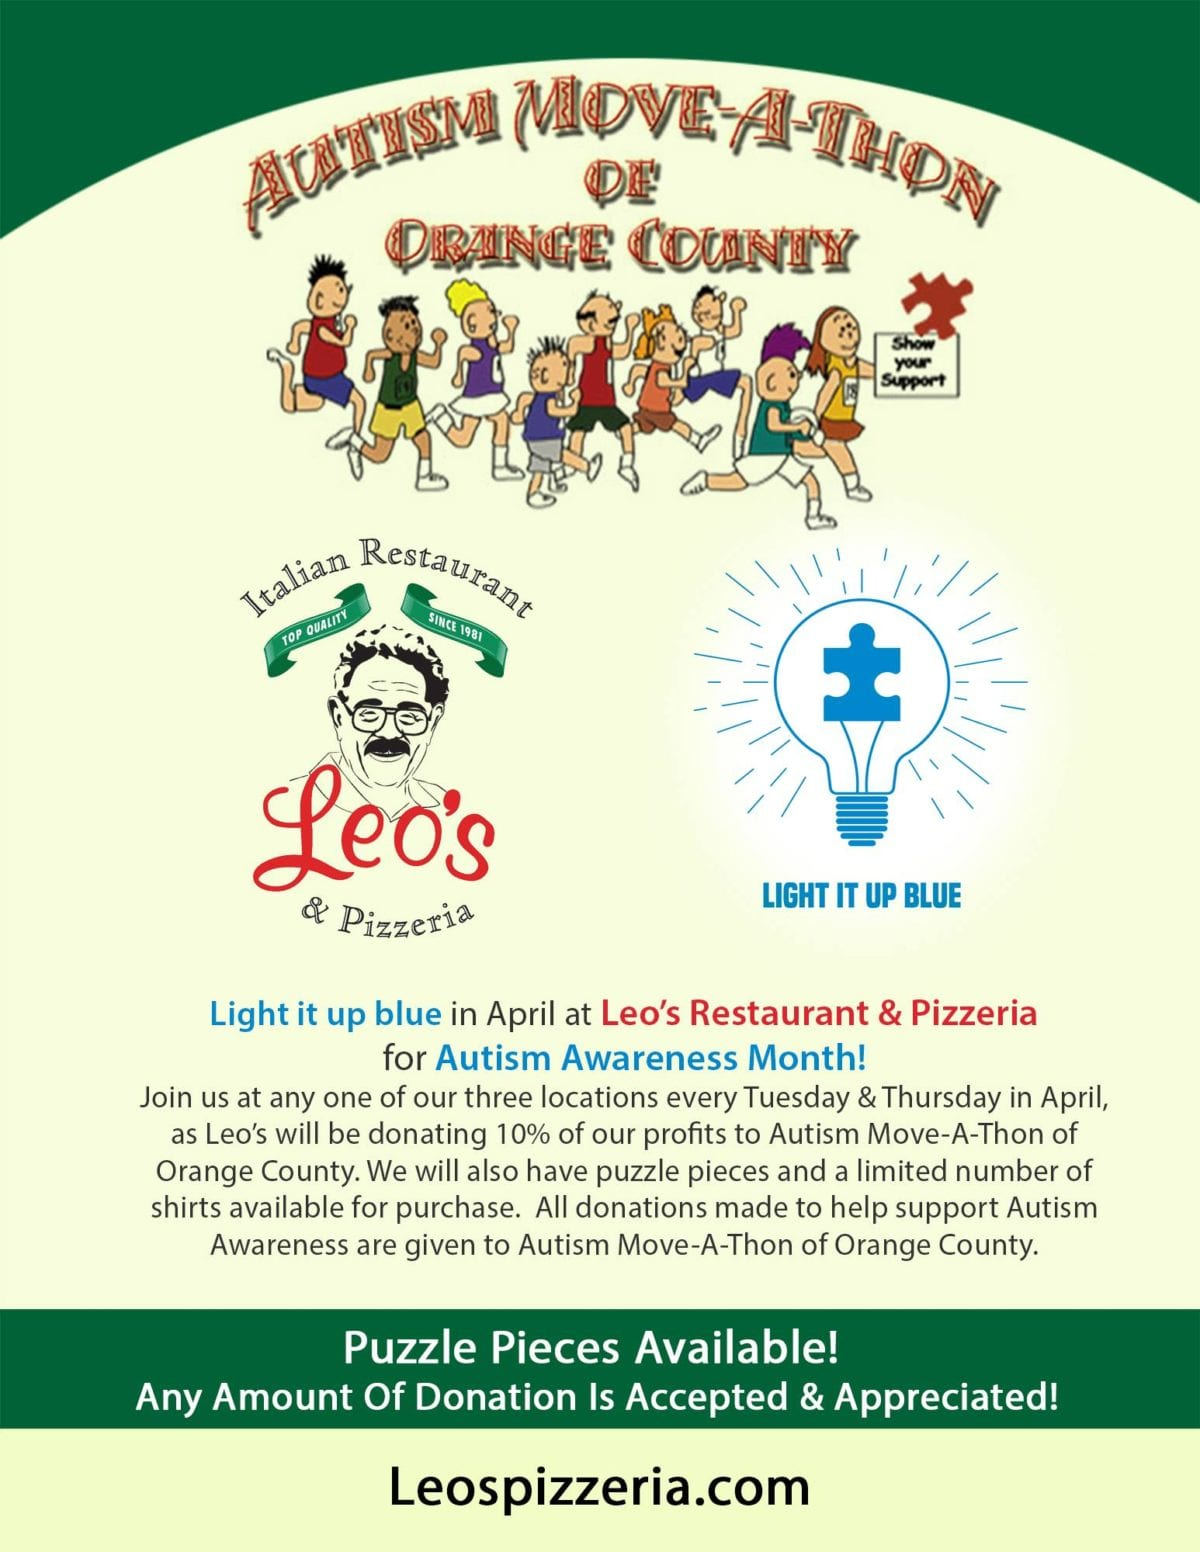 Light It Up Blue In April At Leo's Italian Restaurant & Pizzeria For Austim Awareness Month